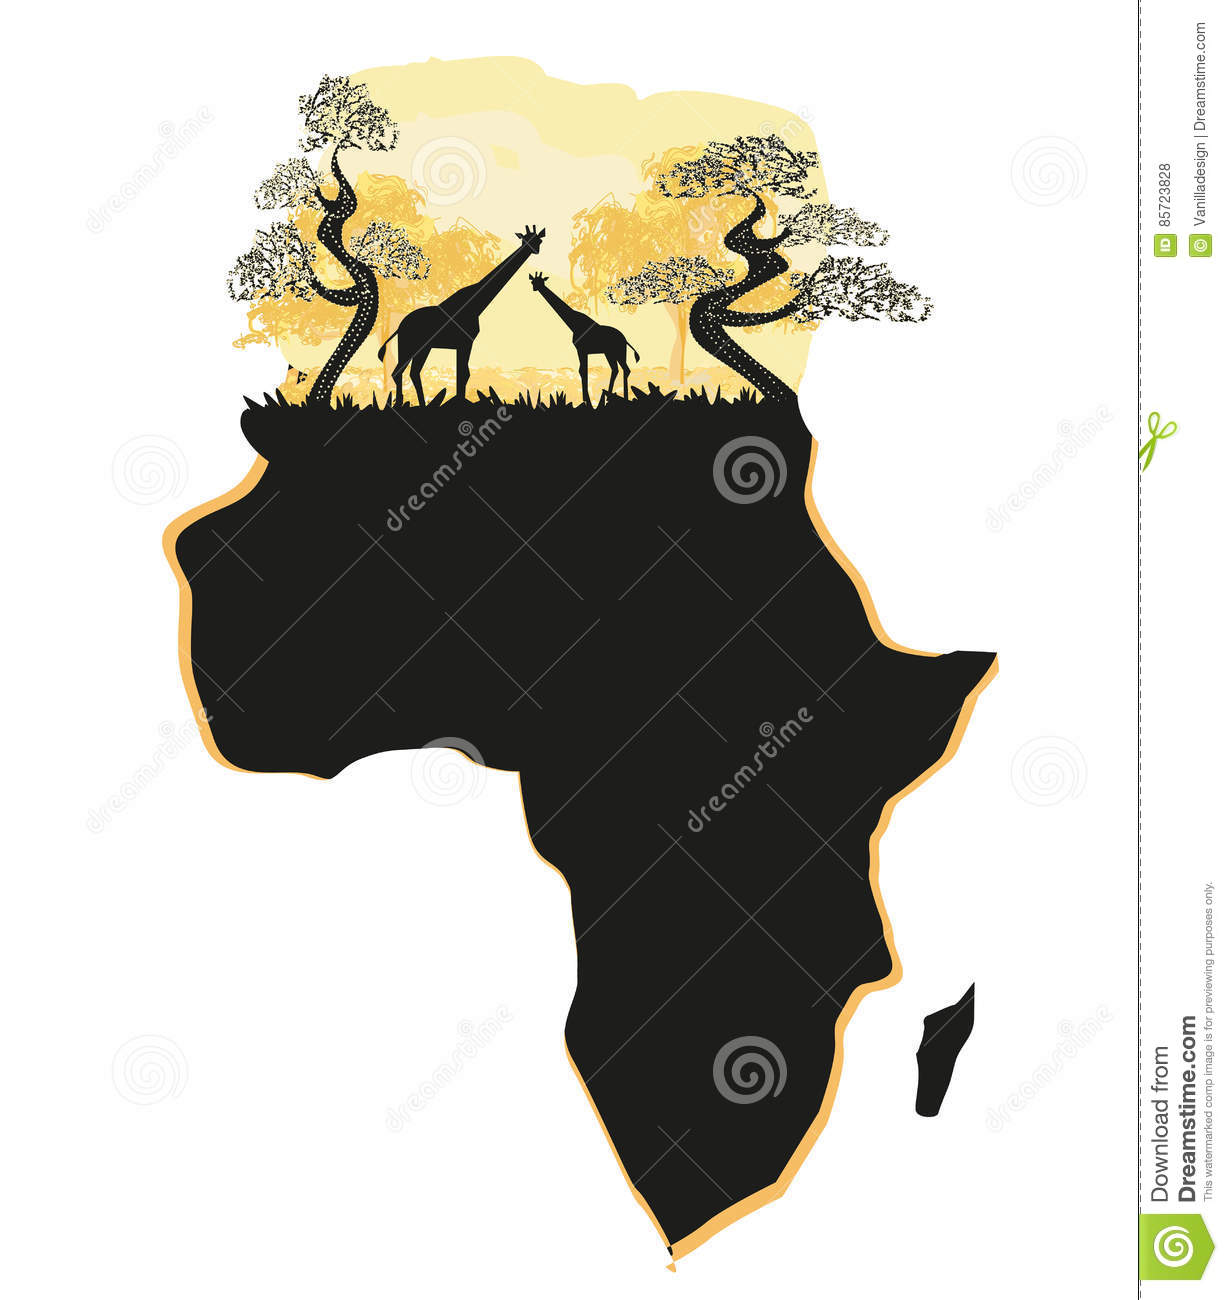 Africa Map Silhouette Vector.African Safari Map Silhouette Stock Vector Illustration Of